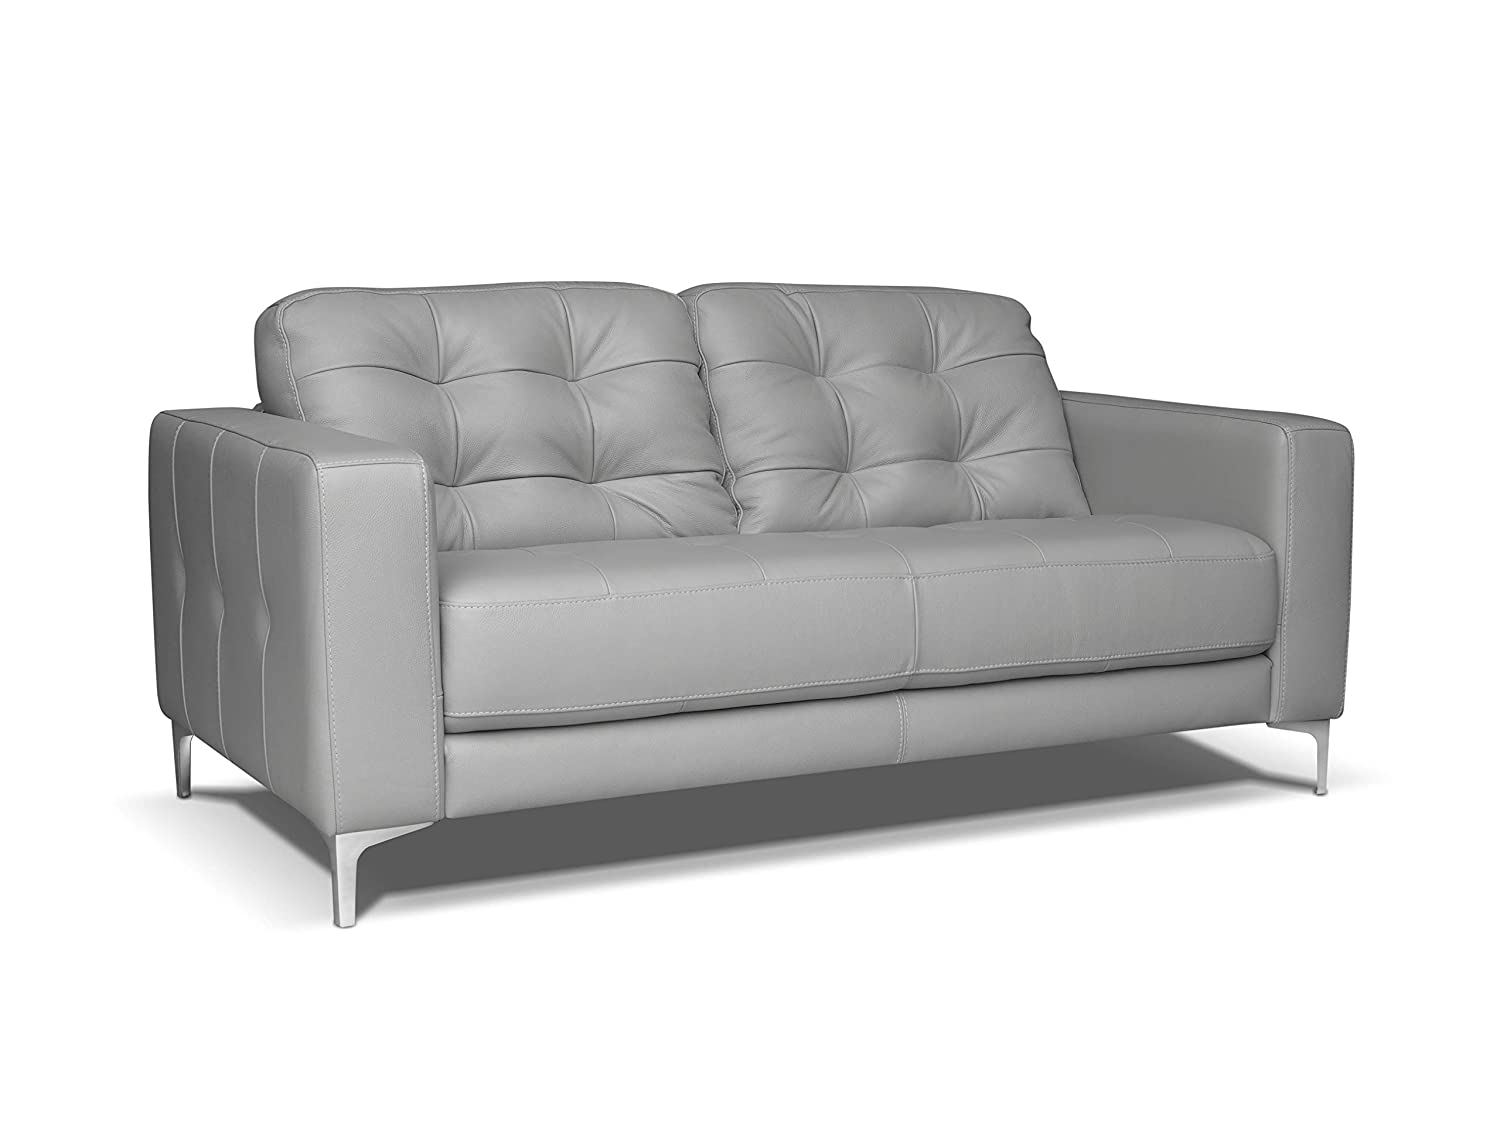 Super Alkove Holt Leather Sofa 2 Seater Light Grey Amazon Co Uk Interior Design Ideas Clesiryabchikinfo